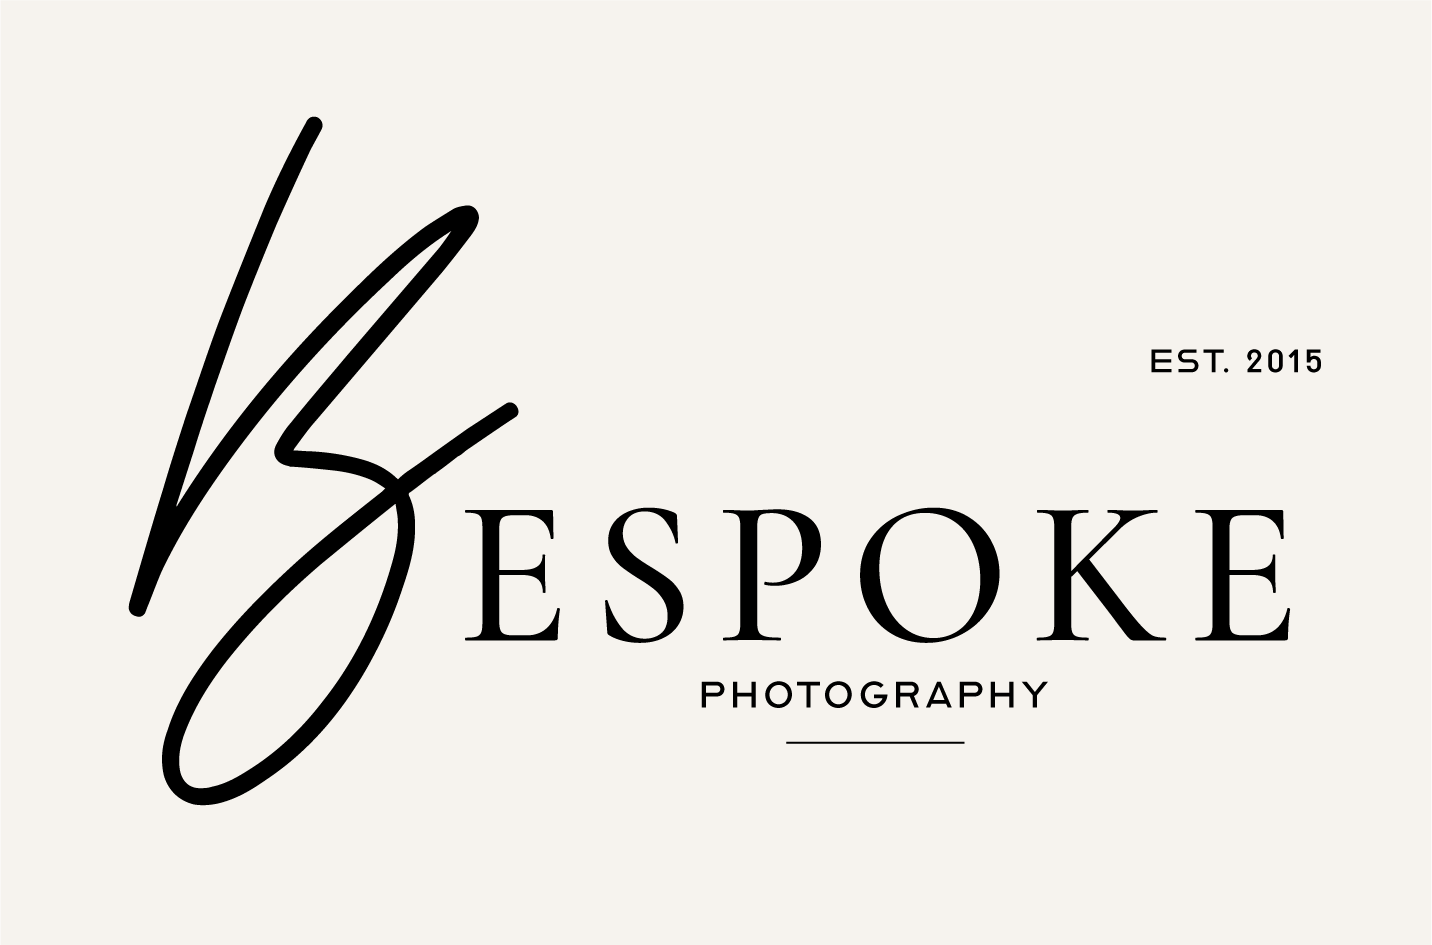 Bespoke Photography Logos background-01.png